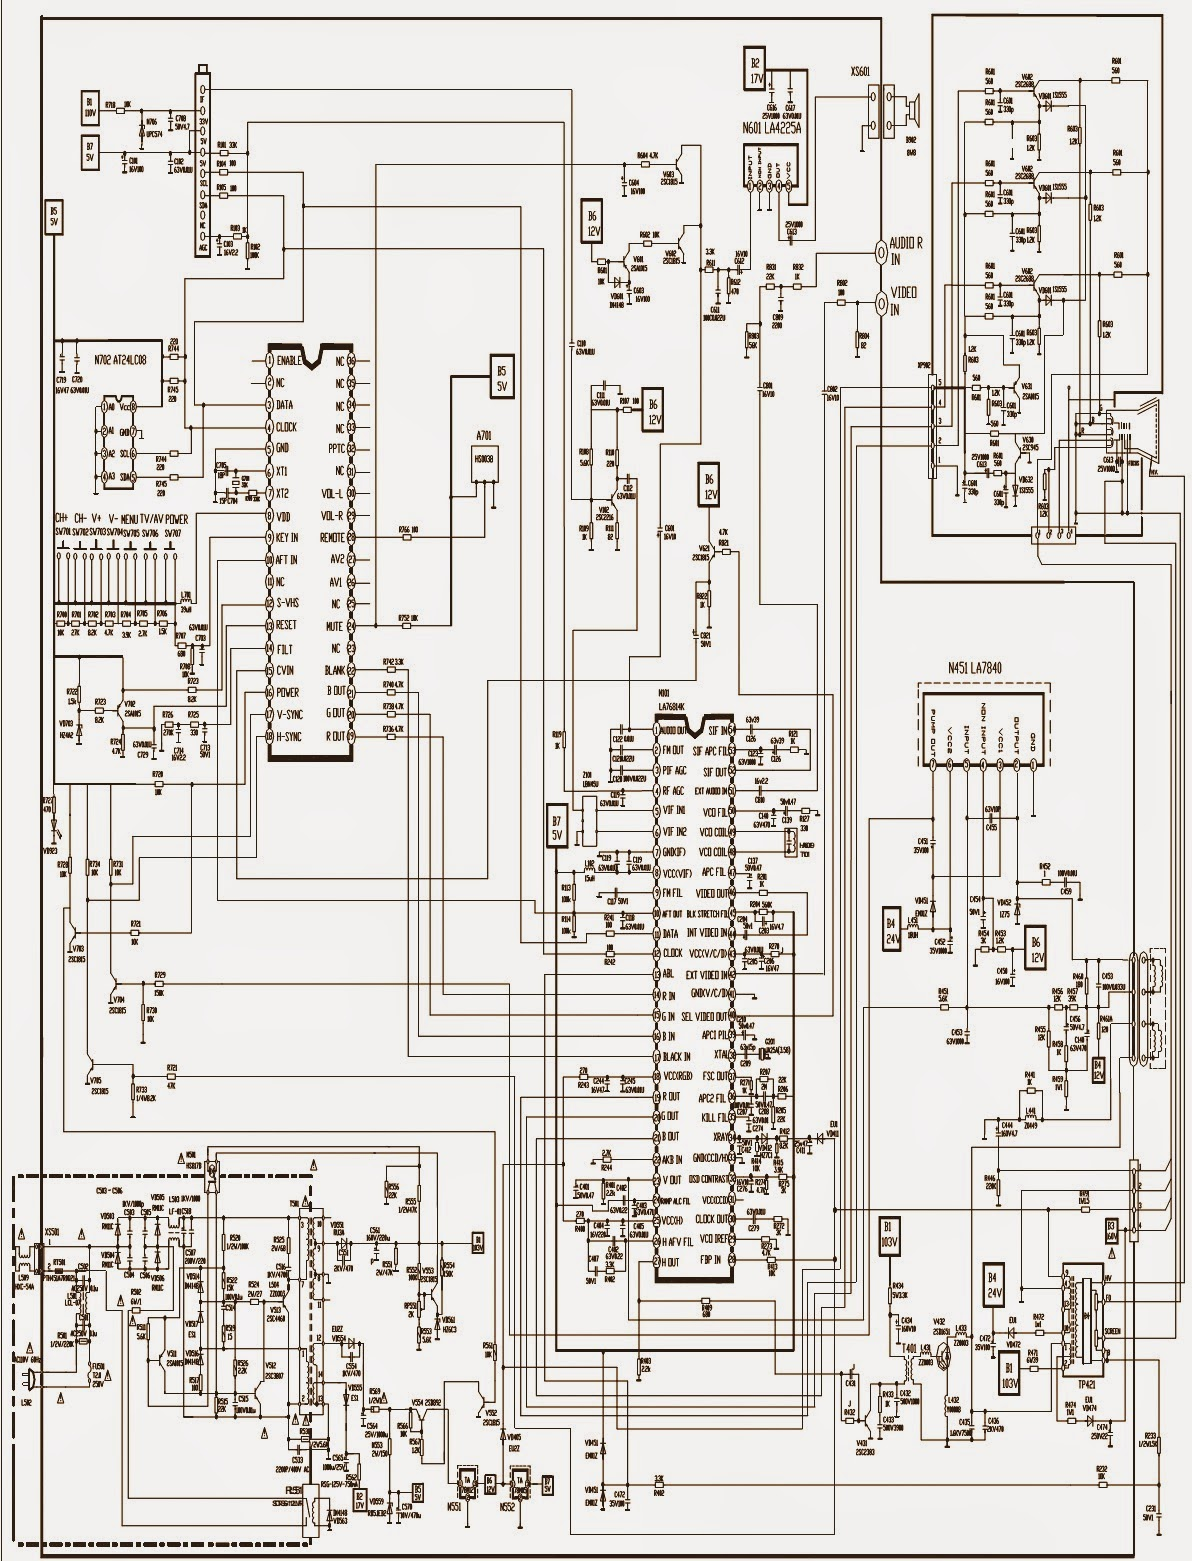 small resolution of kenworth fuse box diagram 2000 kenworth w900 fuse diagram kenworth w900 fuse box diagram on 2003